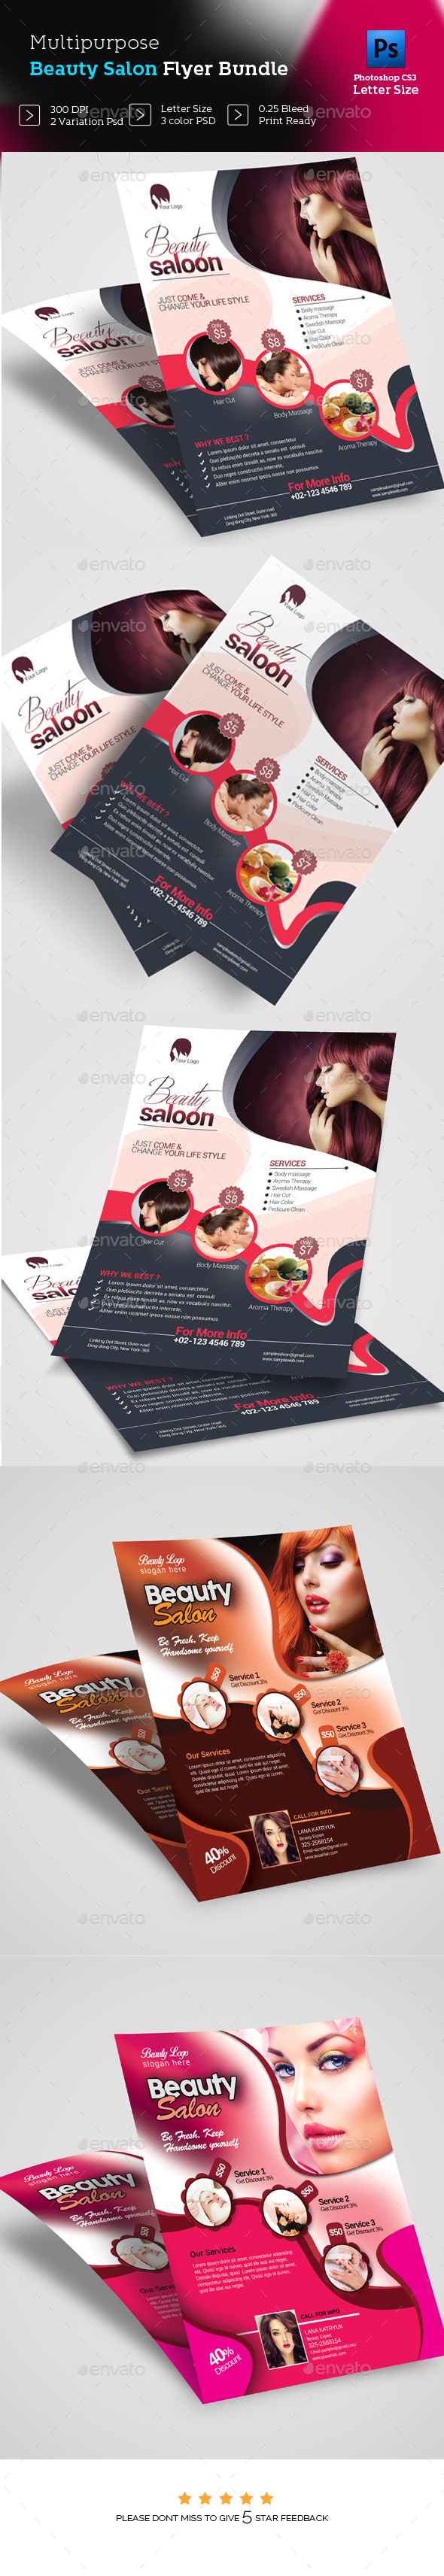 Beauty Salon Flyer Bundle